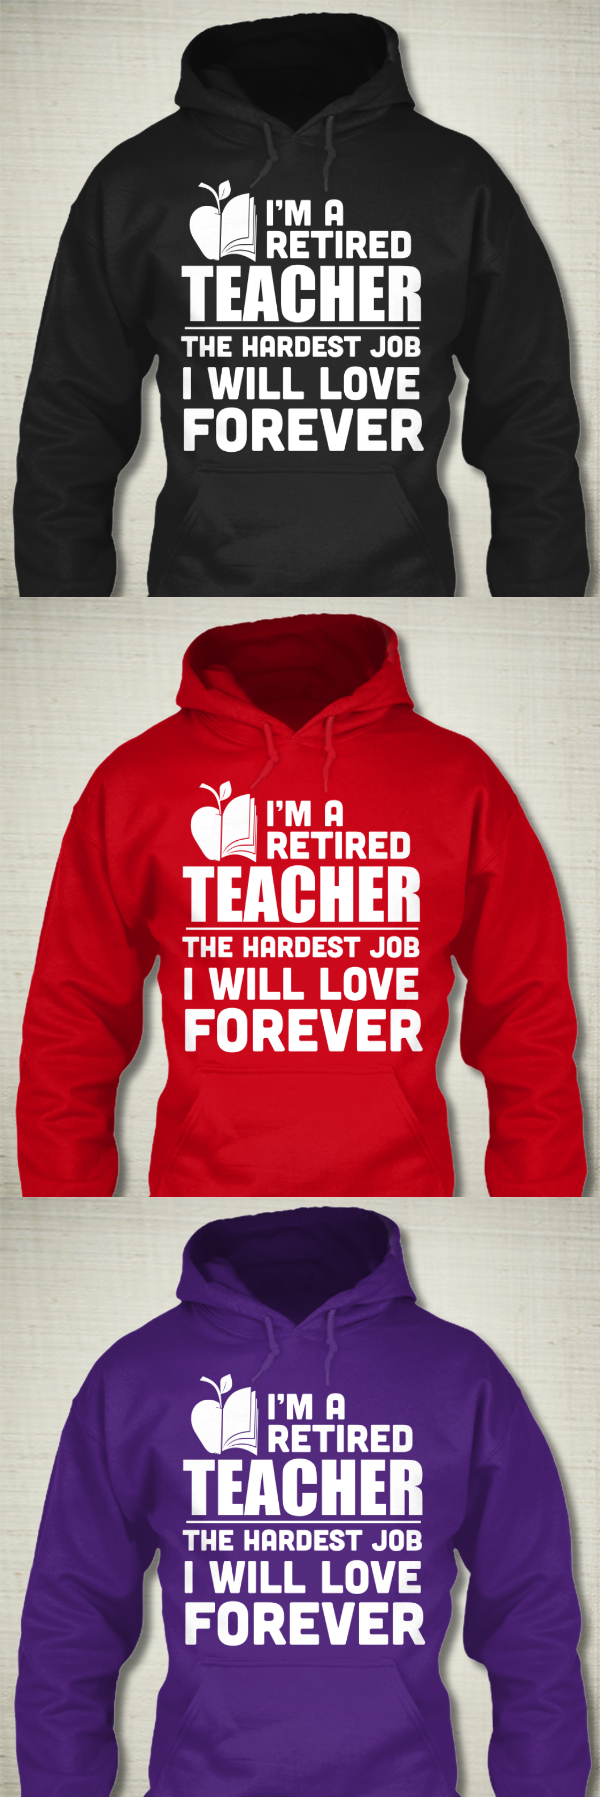 I'm a Retired Teacher and I love it! Available here https://teespring.com/603_tch_rthrd/?var=pnt1